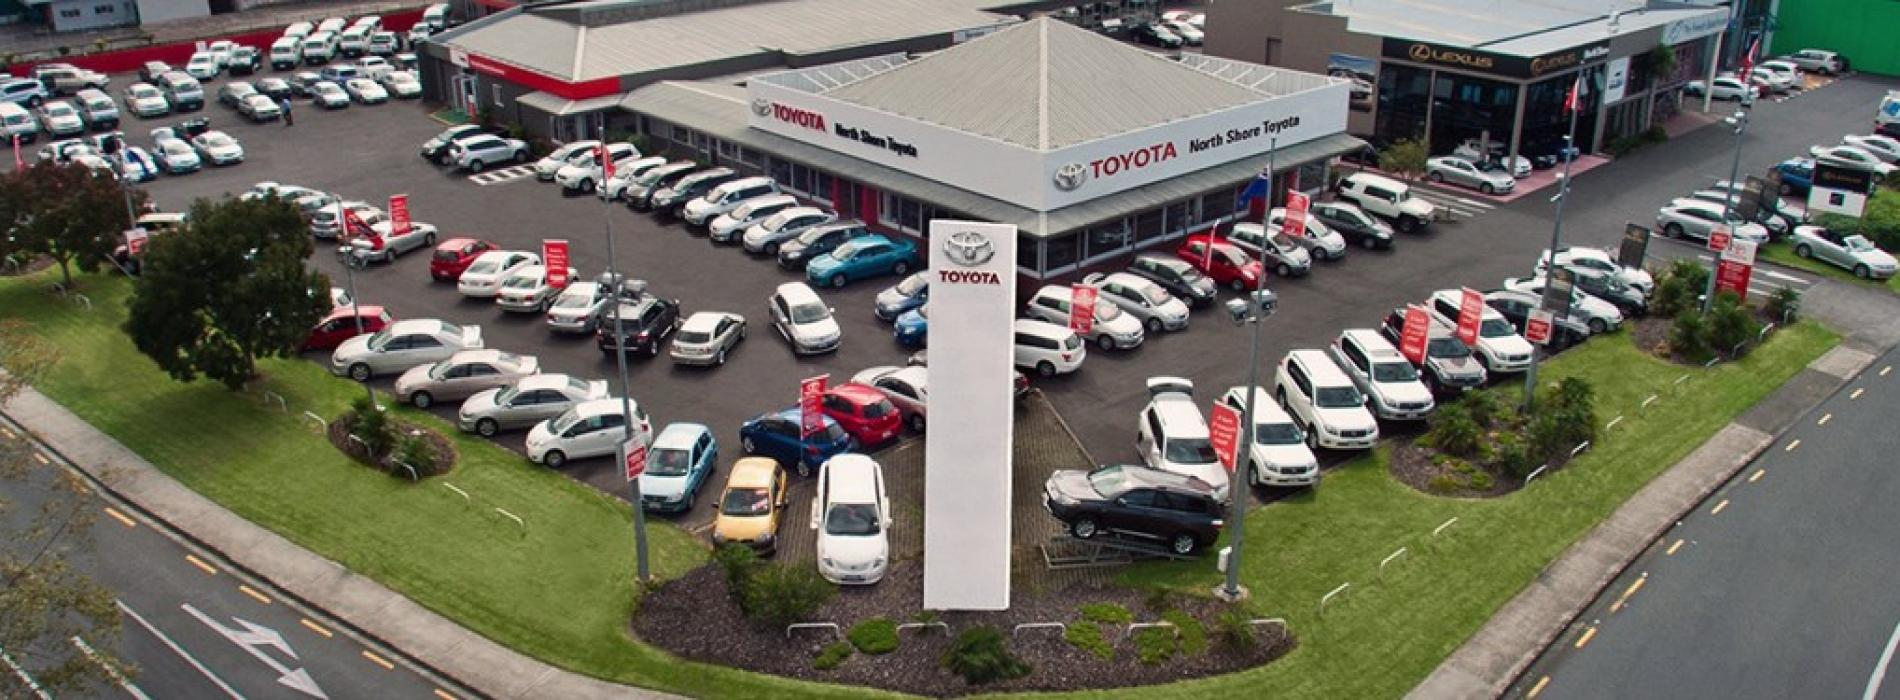 North Shore Toyota Header